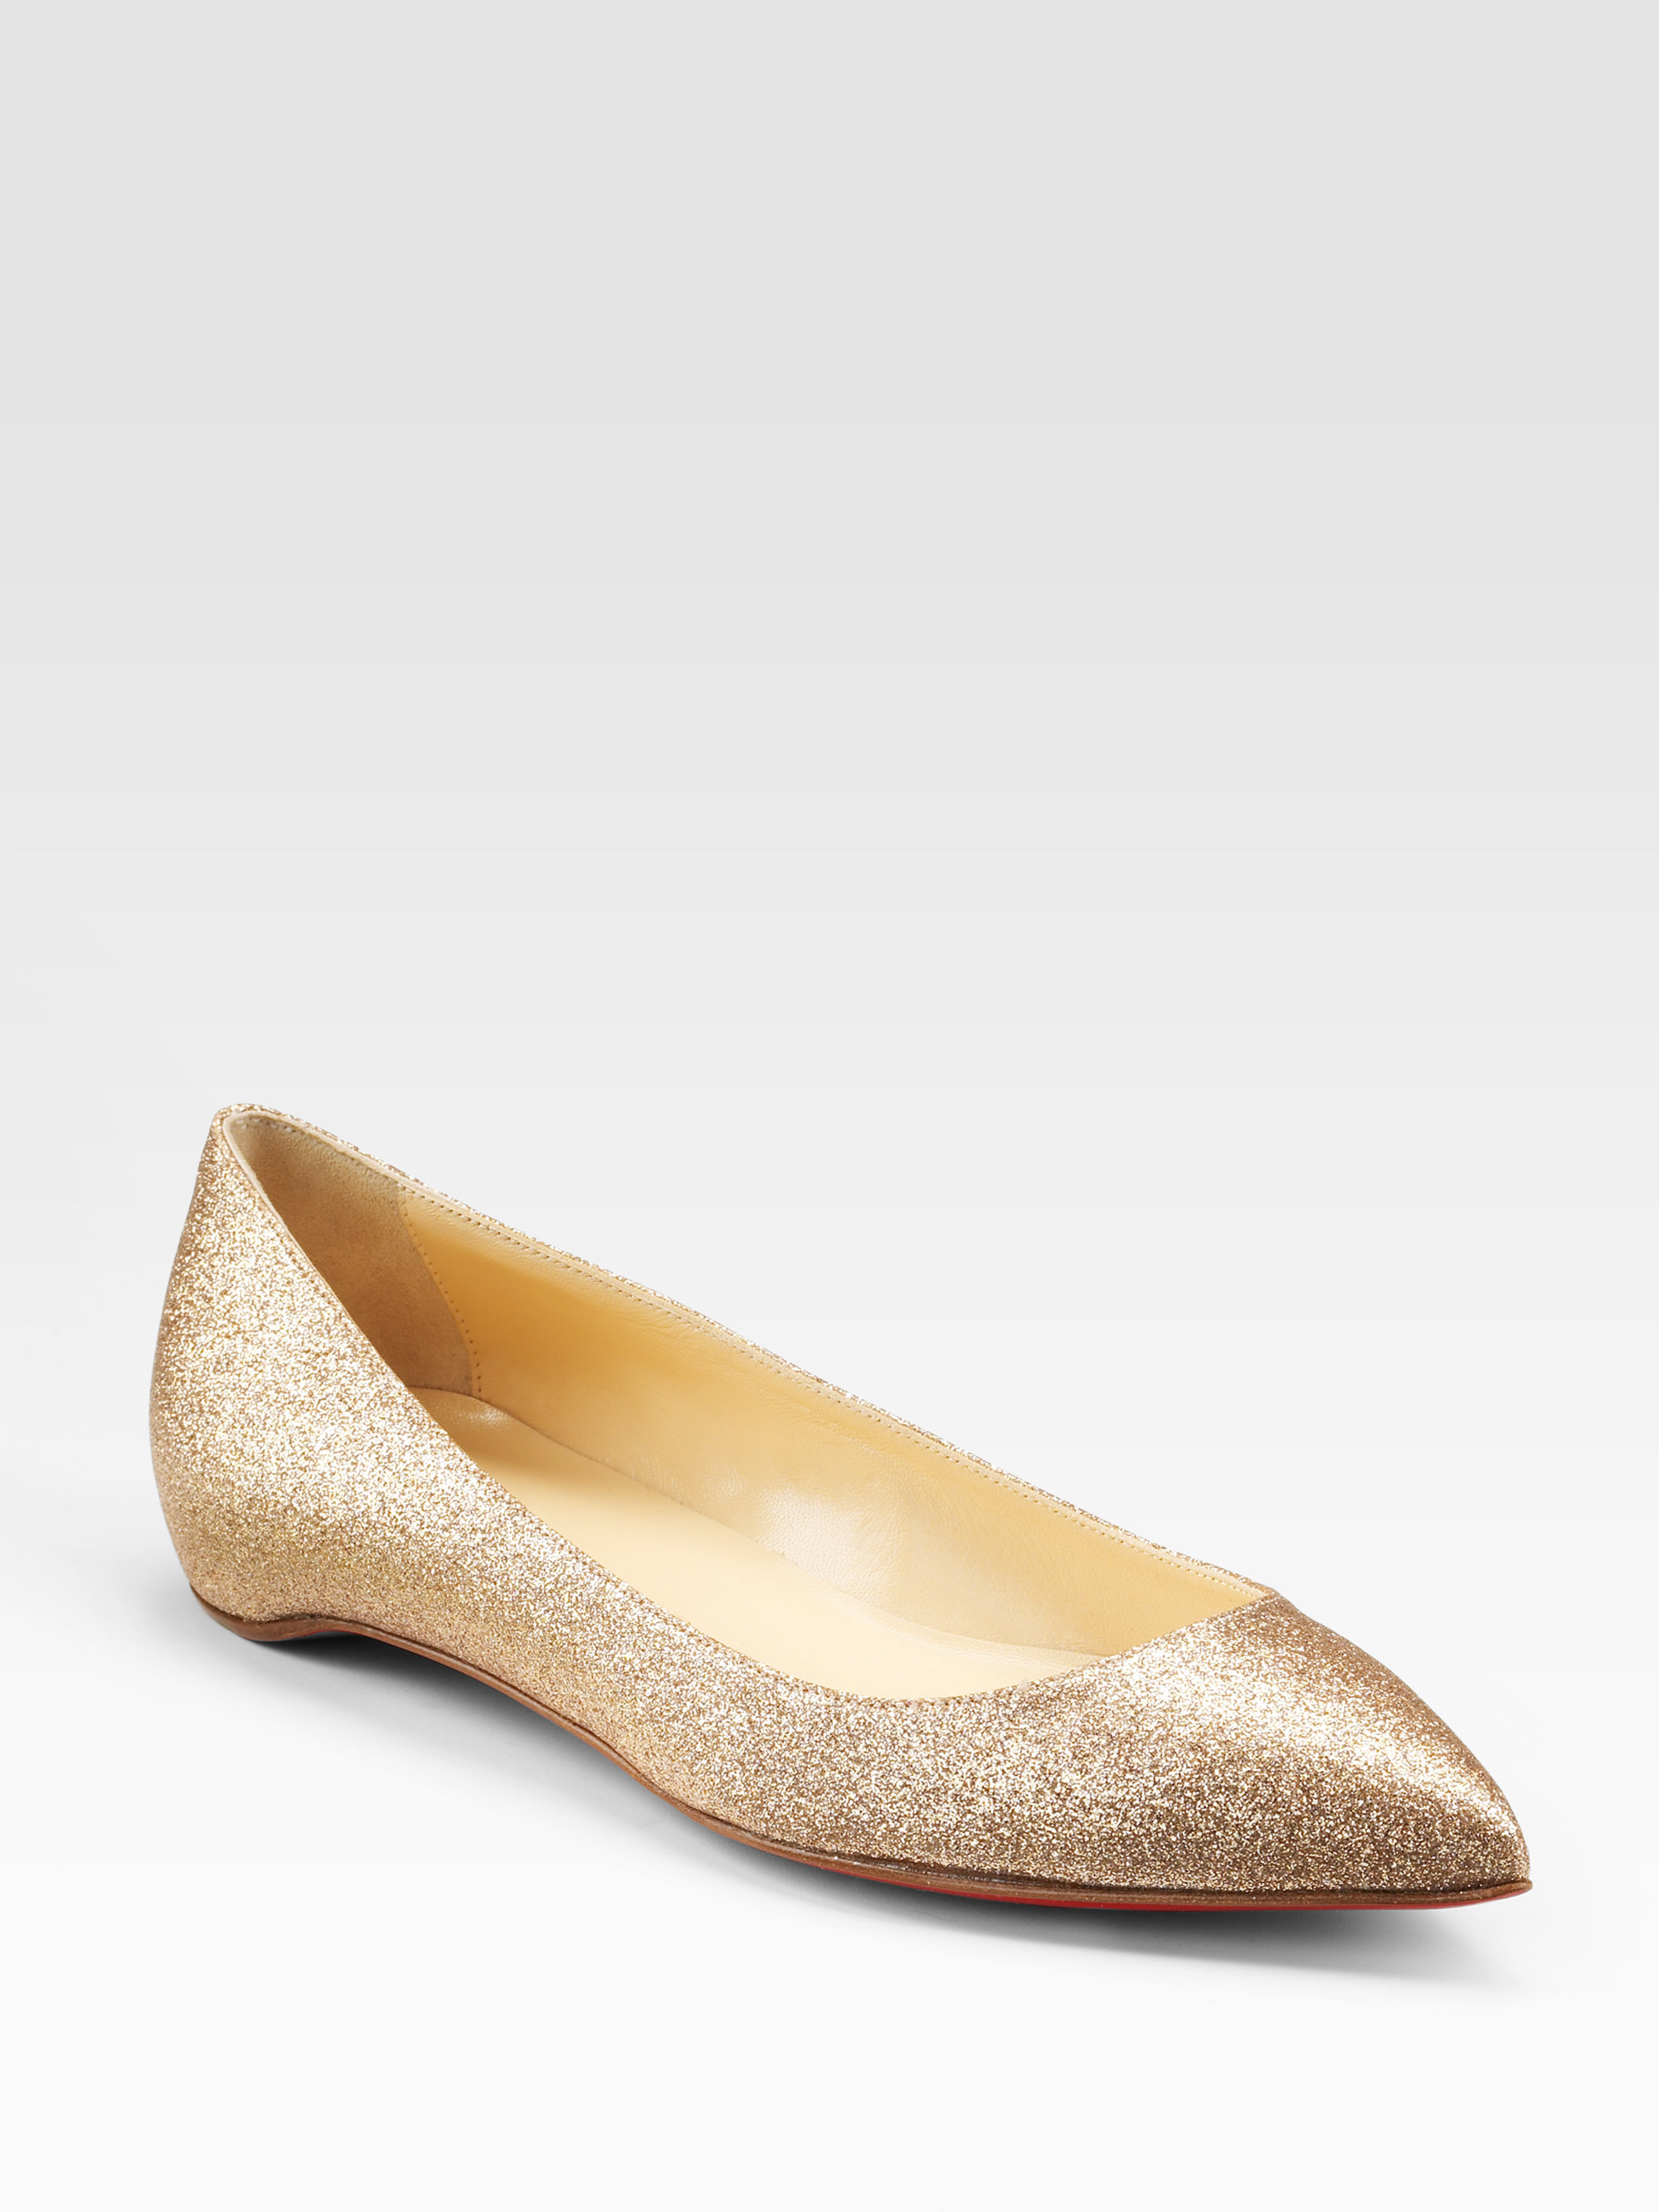 64731b6eeae9 Lyst - Christian Louboutin Pigalle Glittercovered Leather Ballet ...